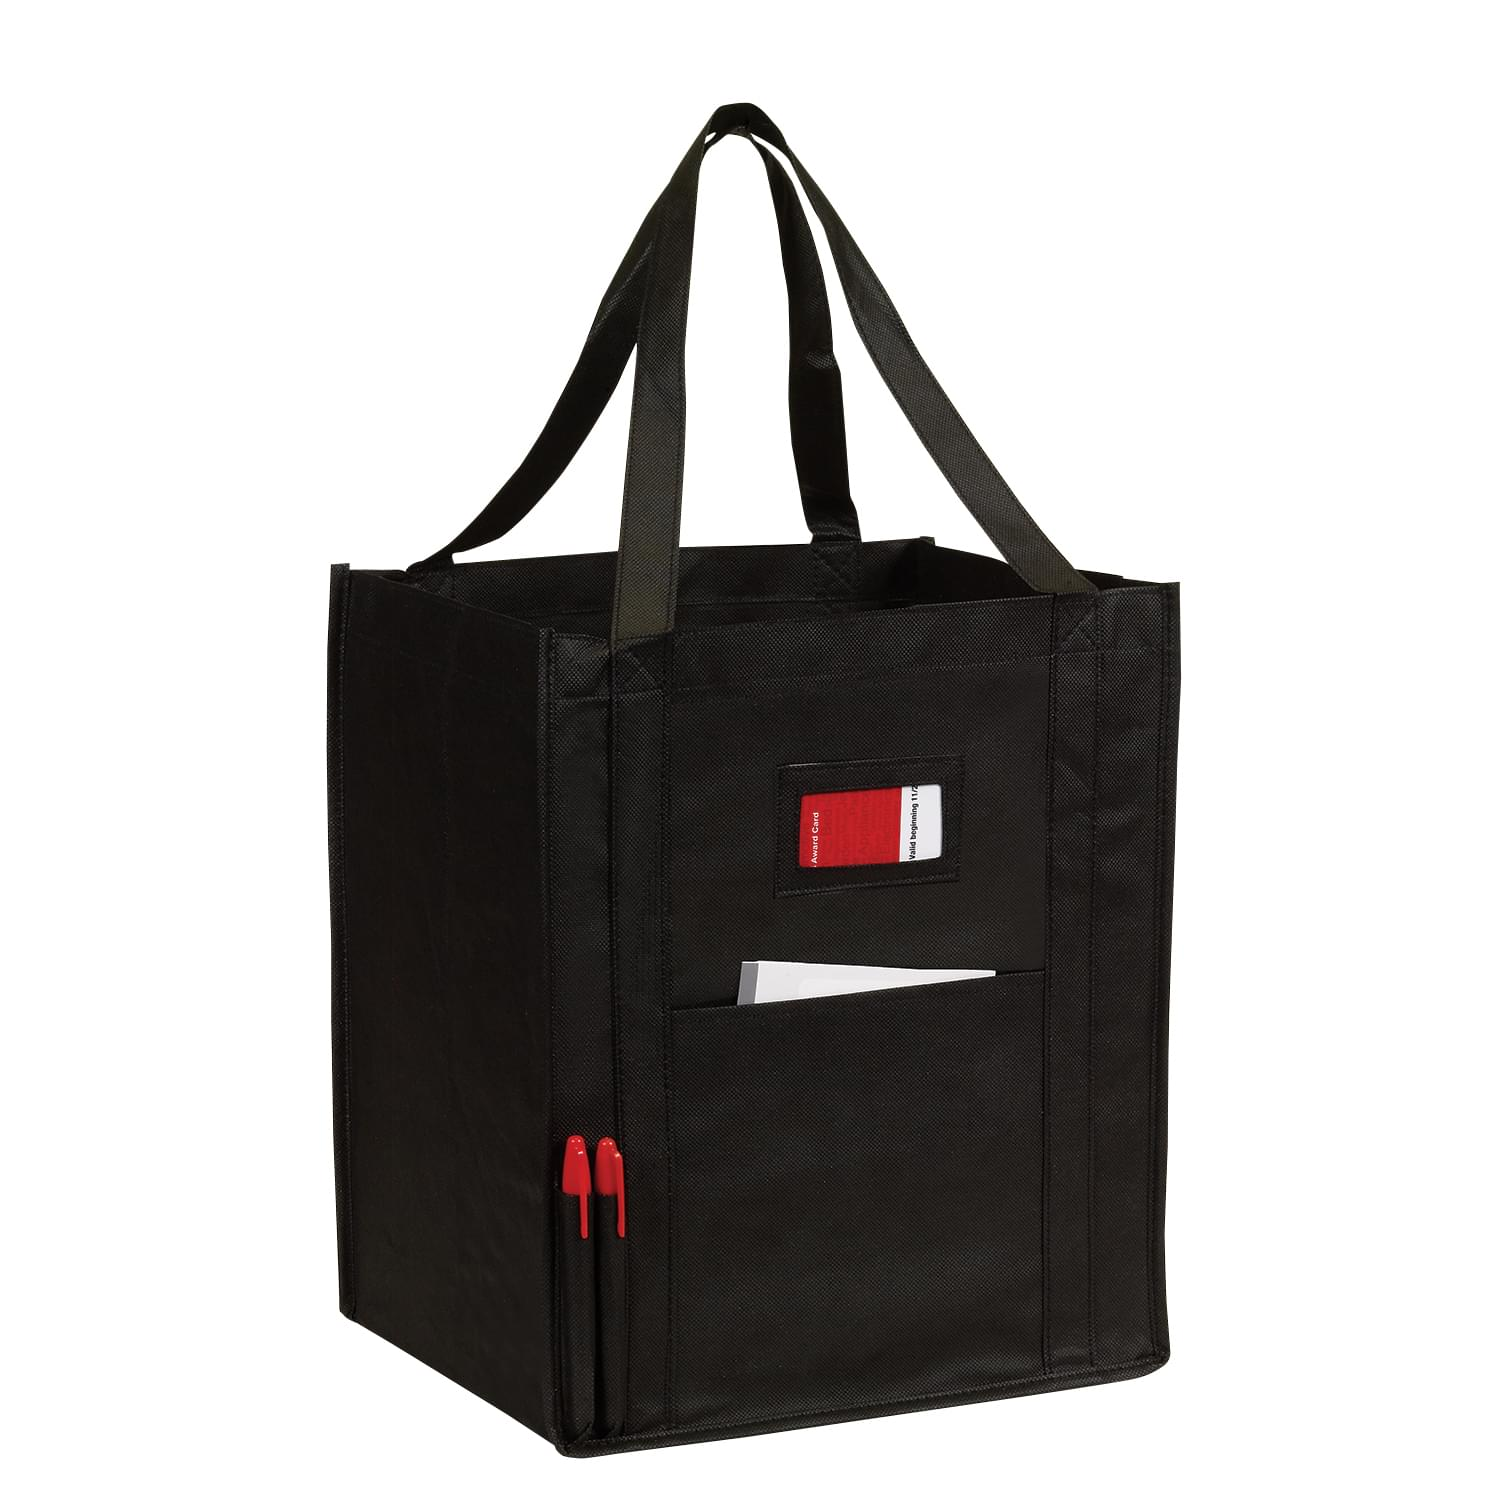 Recyclable Identity Shopper Tote Bags